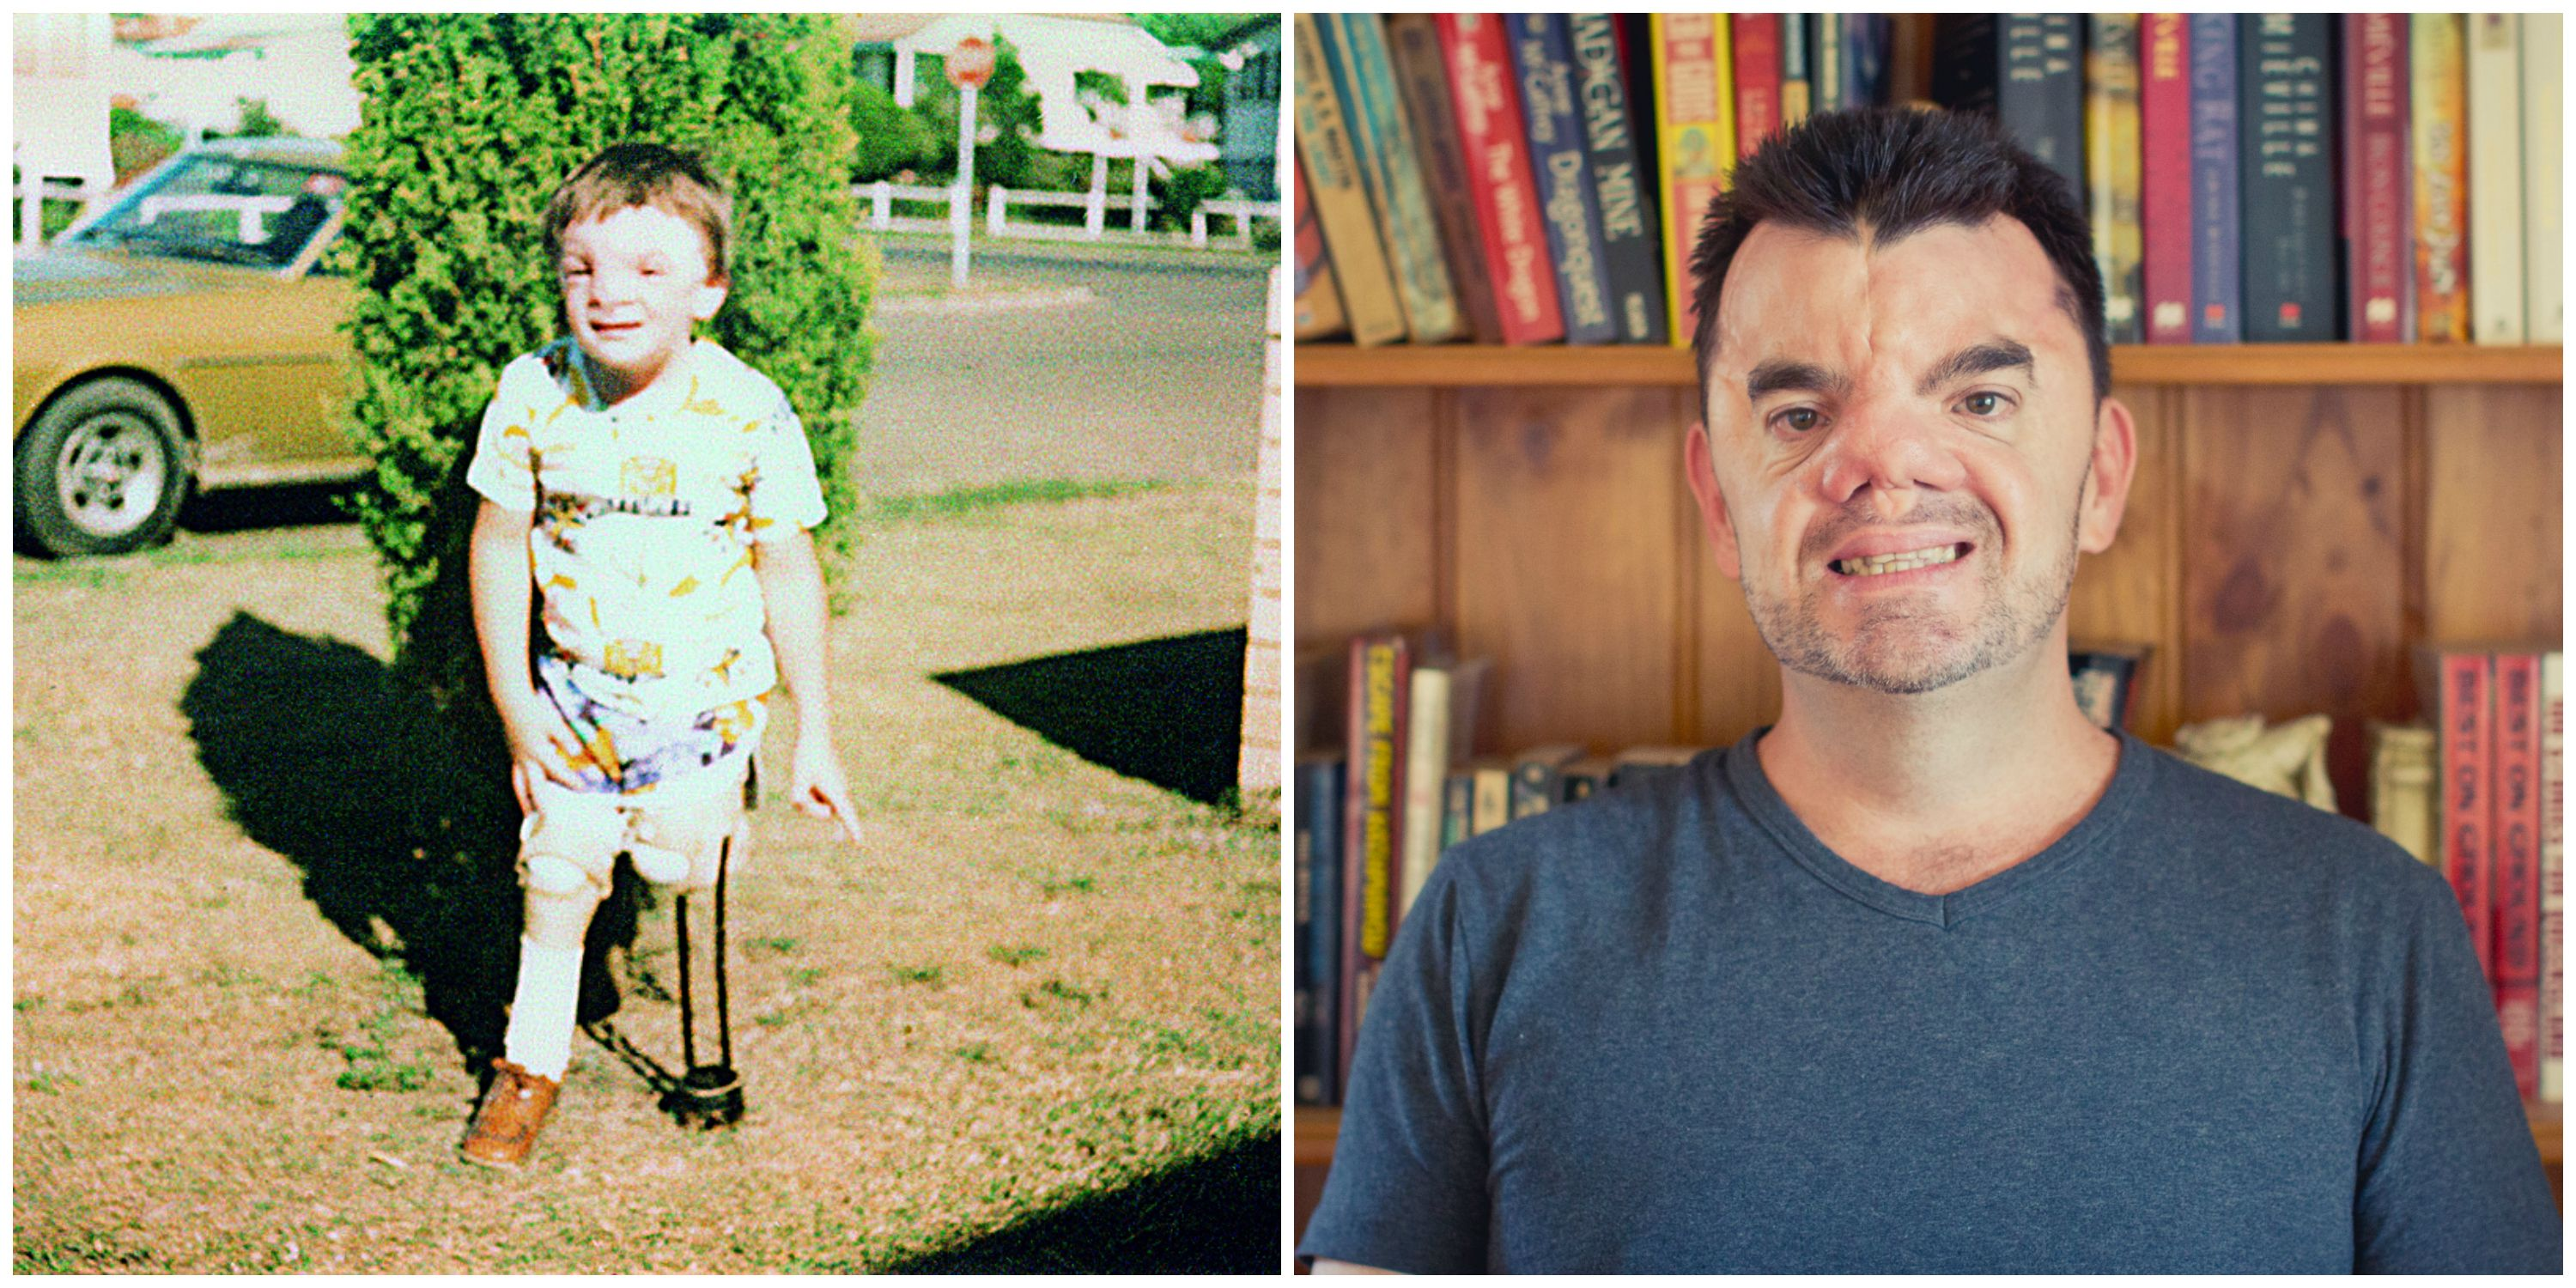 Parenting a Child with Disabilities - Robert Hoge Ugly Essay